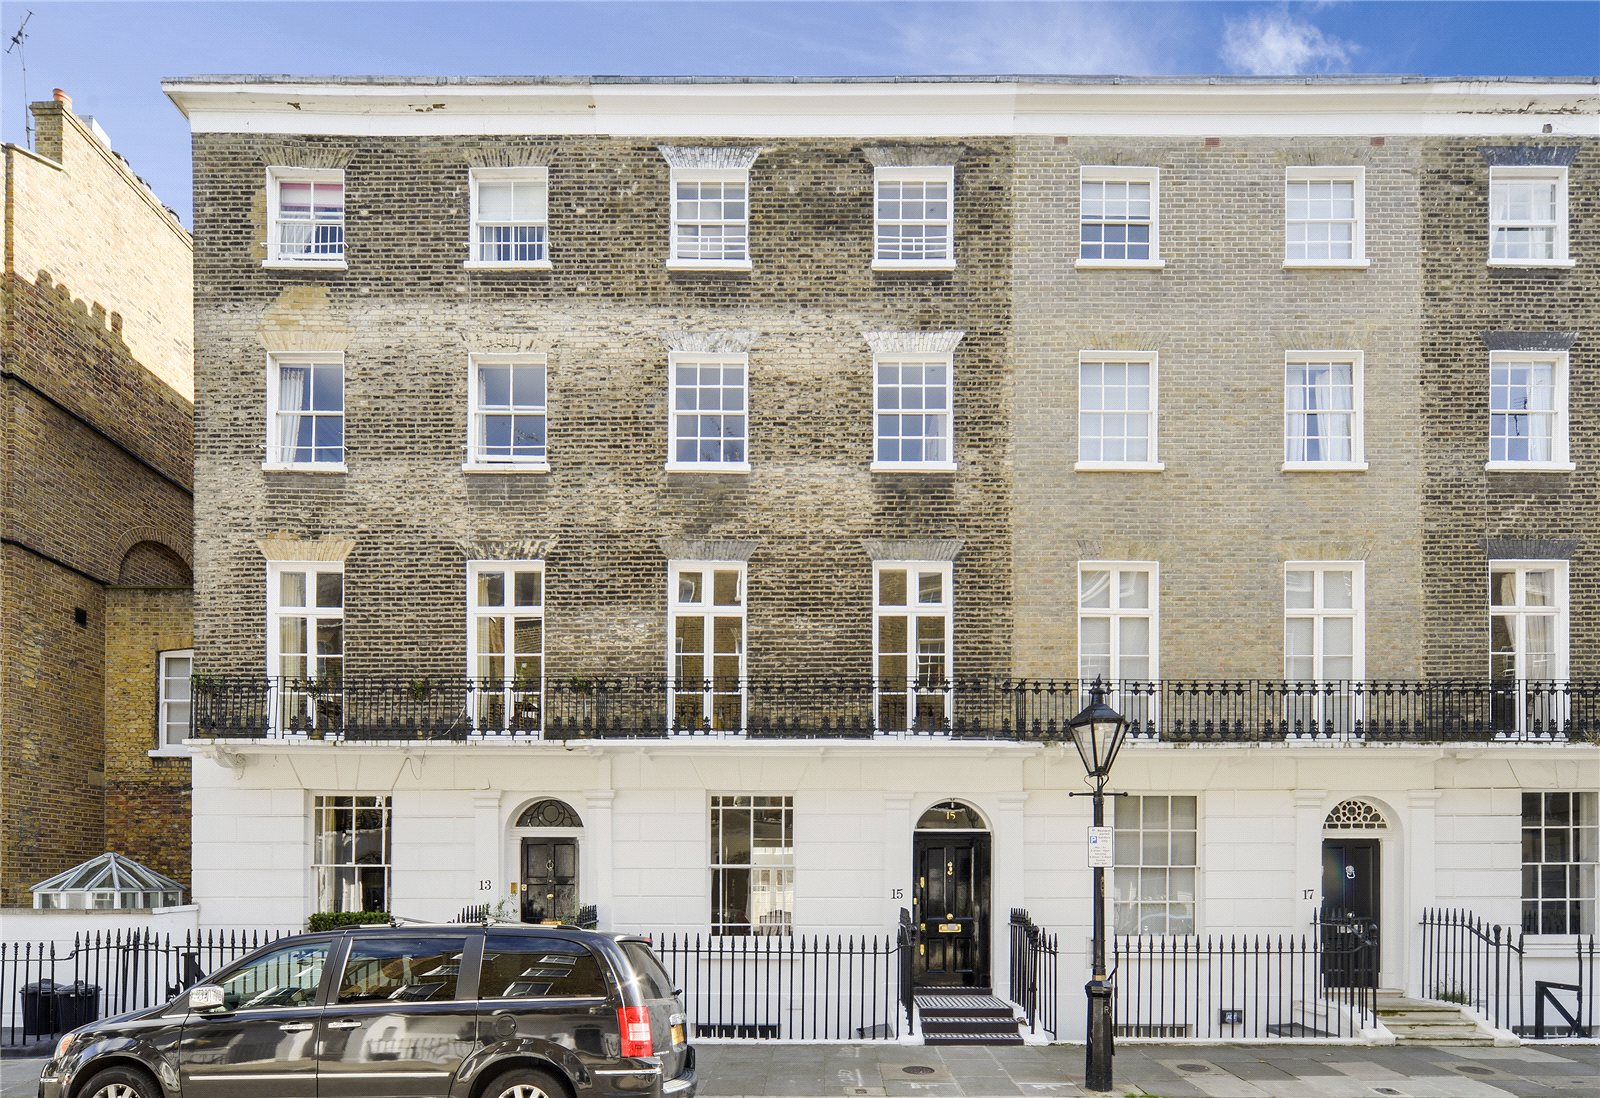 Single Family Home for Sale at South Terrace, Knightsbridge, London, SW7 Knightsbridge, London, England